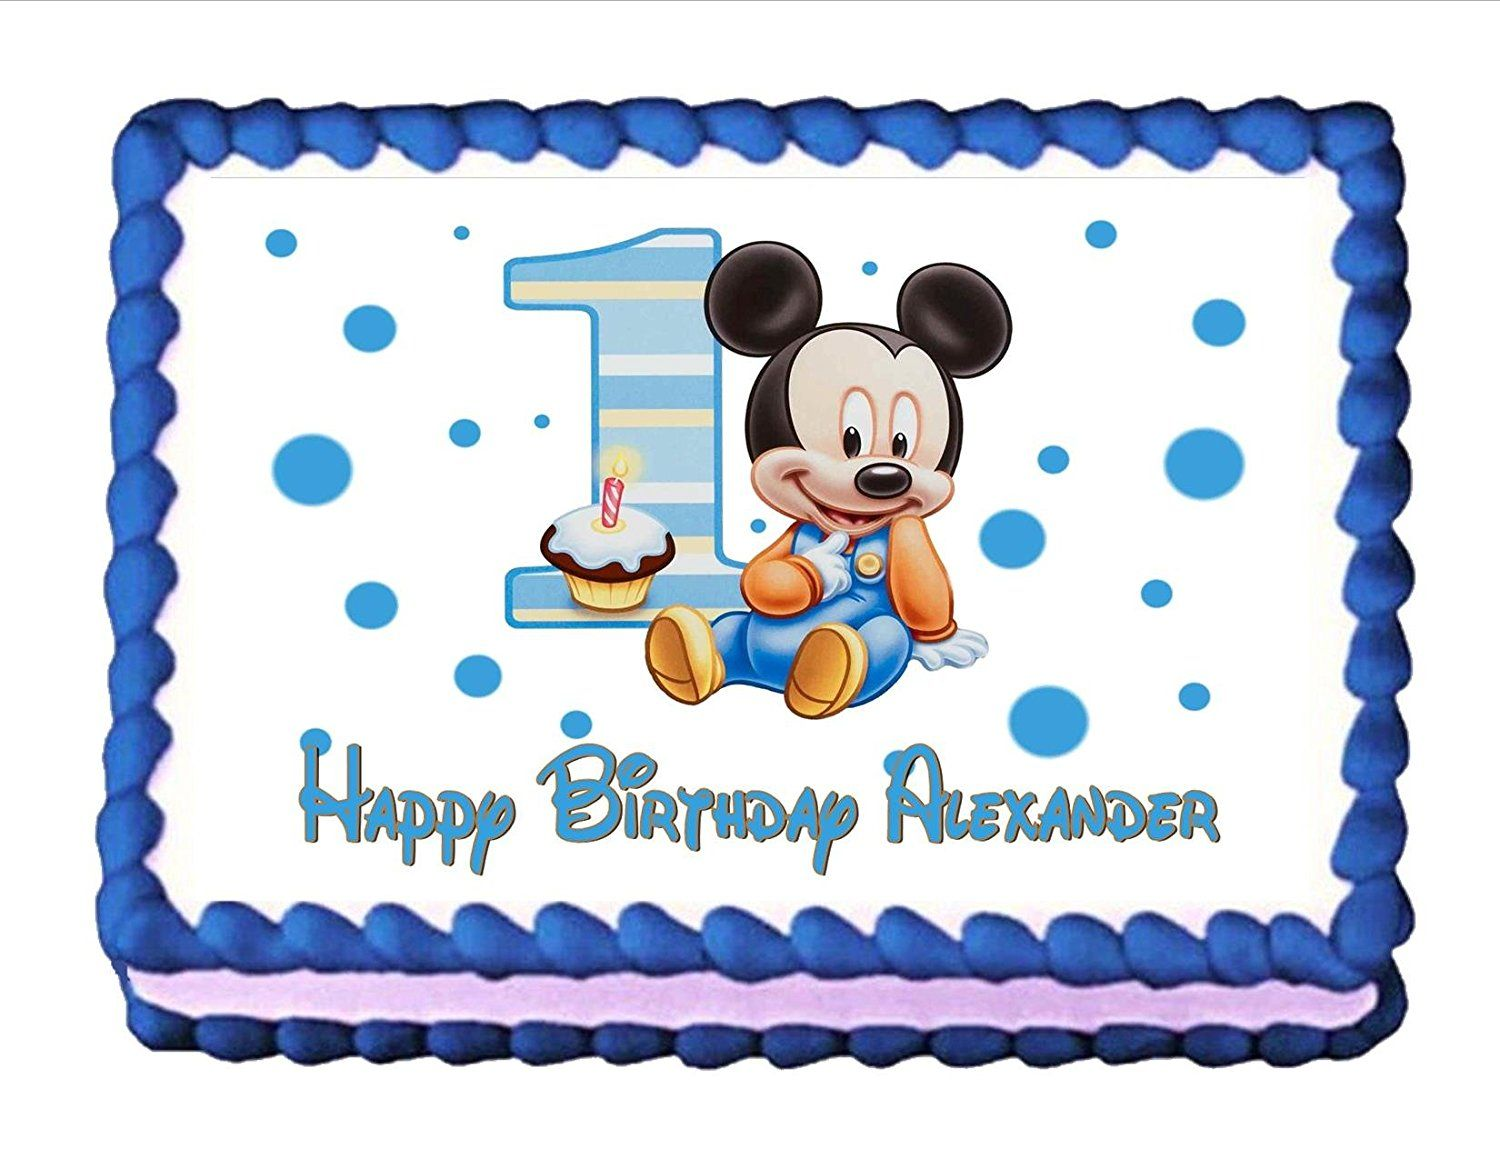 Edible cake topper baby mickey mouse babys 1st birthday